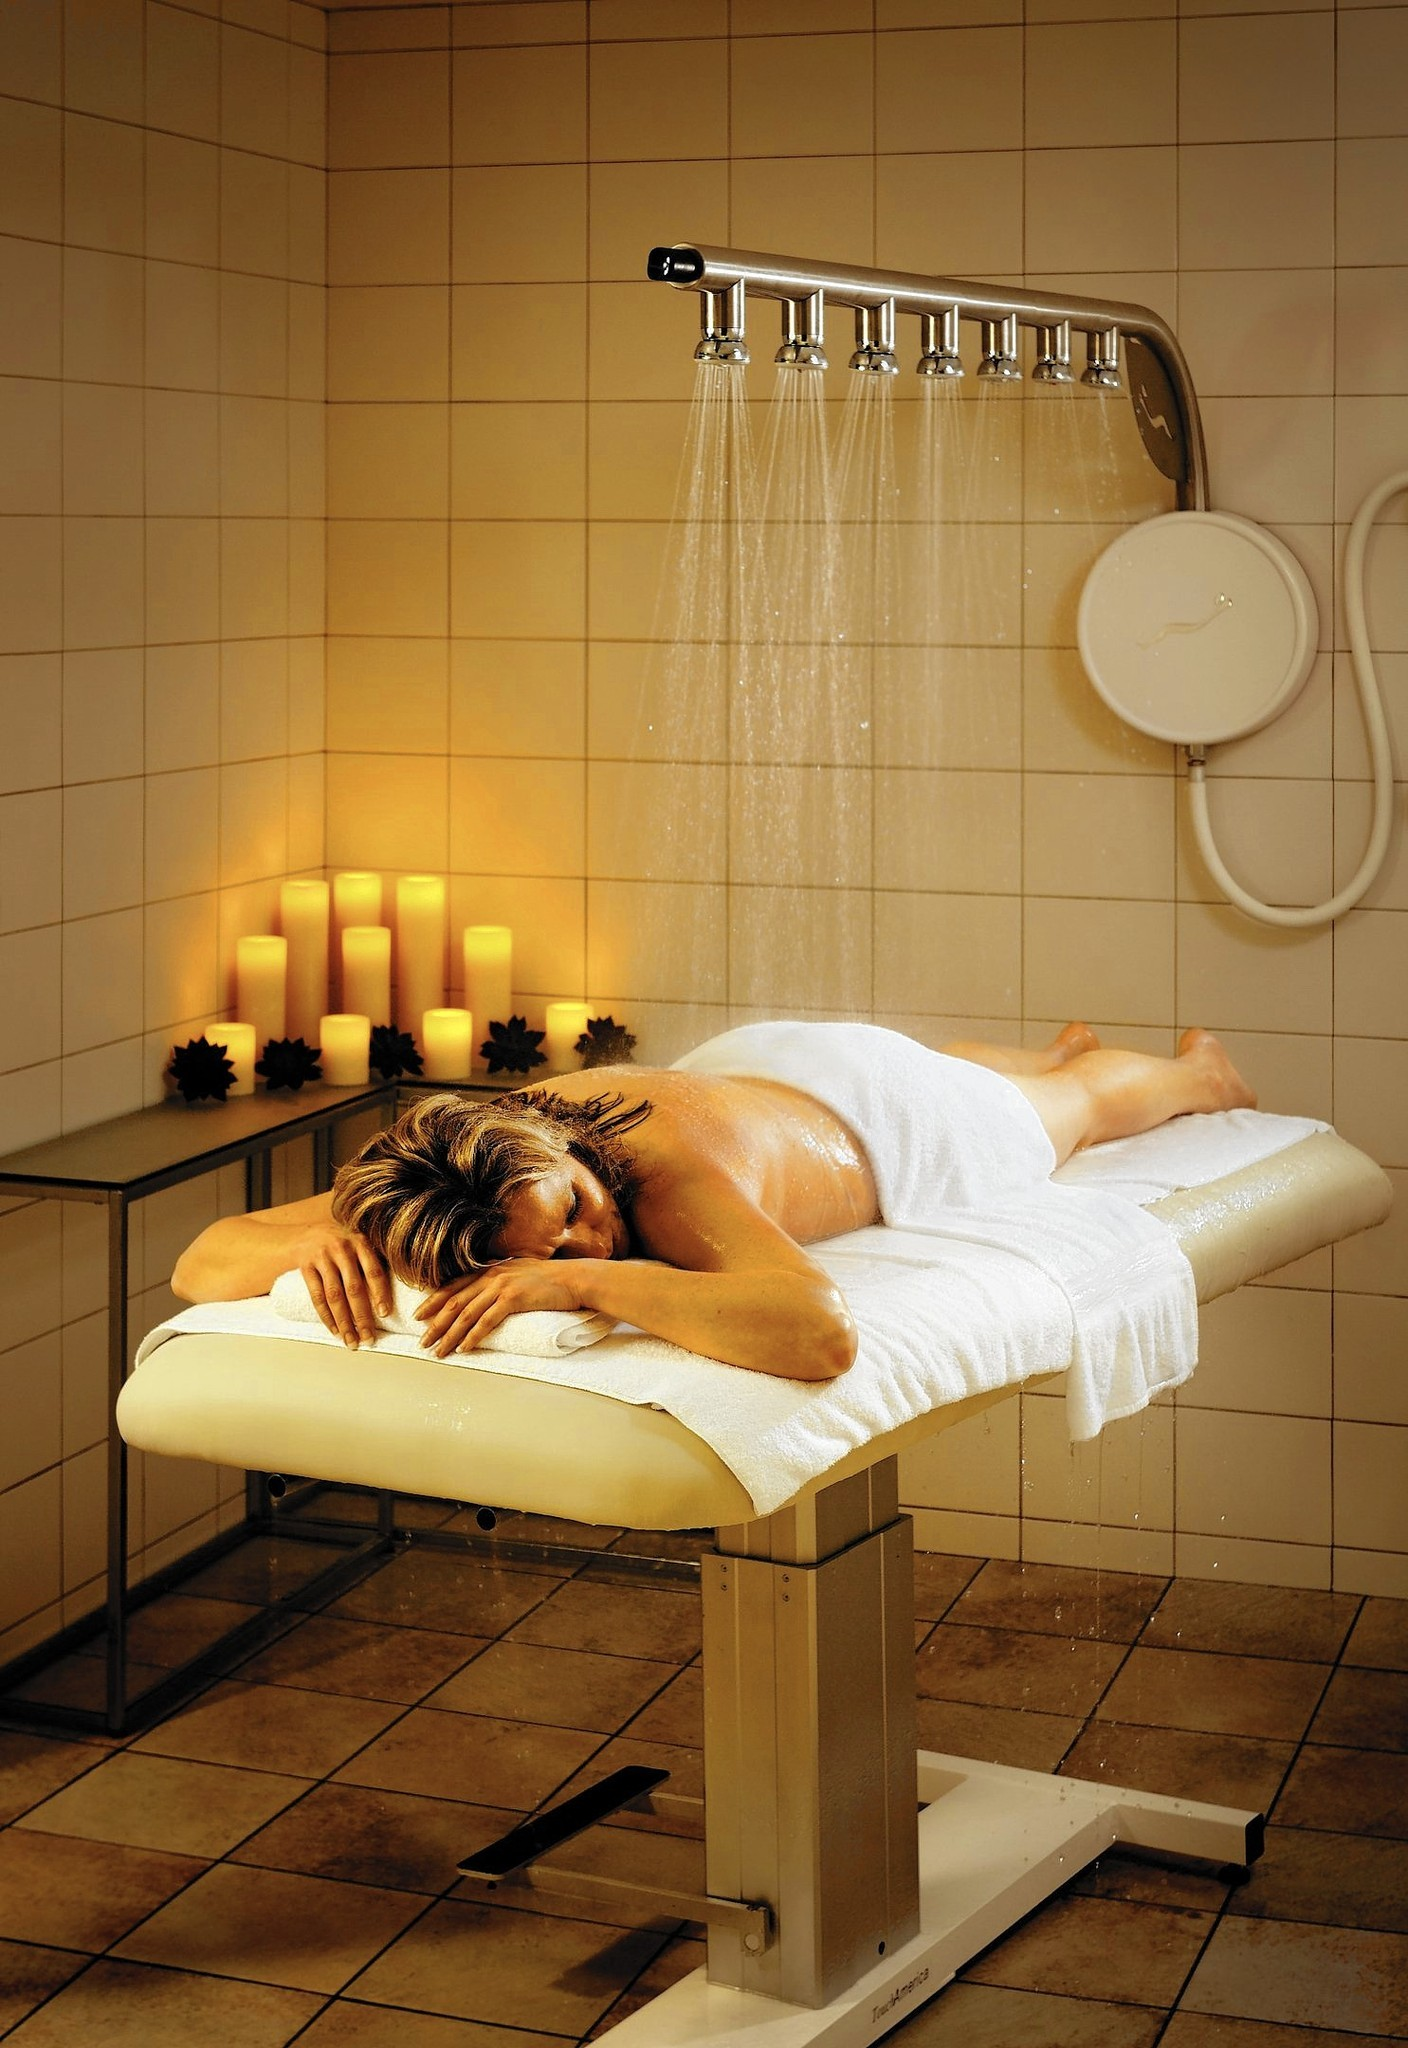 Midwestern spas await with signature treatments